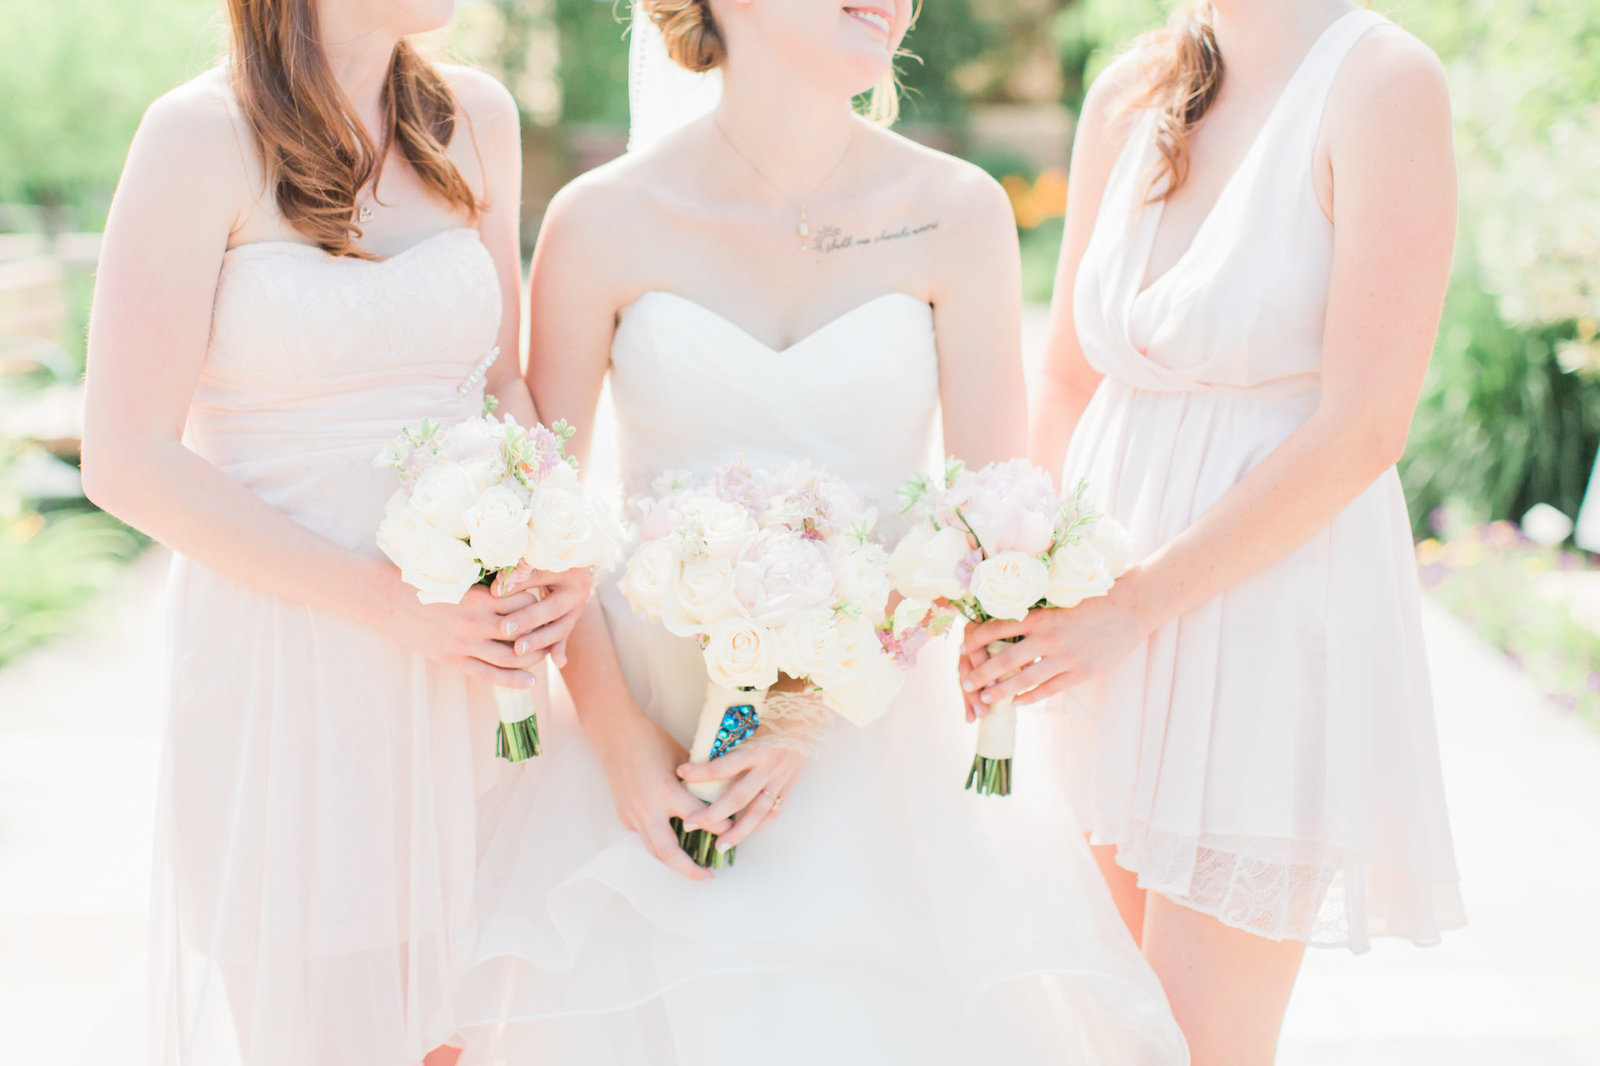 Sarah-Jon-Las-Vegas-Spring-Preserve-Wedding-Sneak-Peek-1